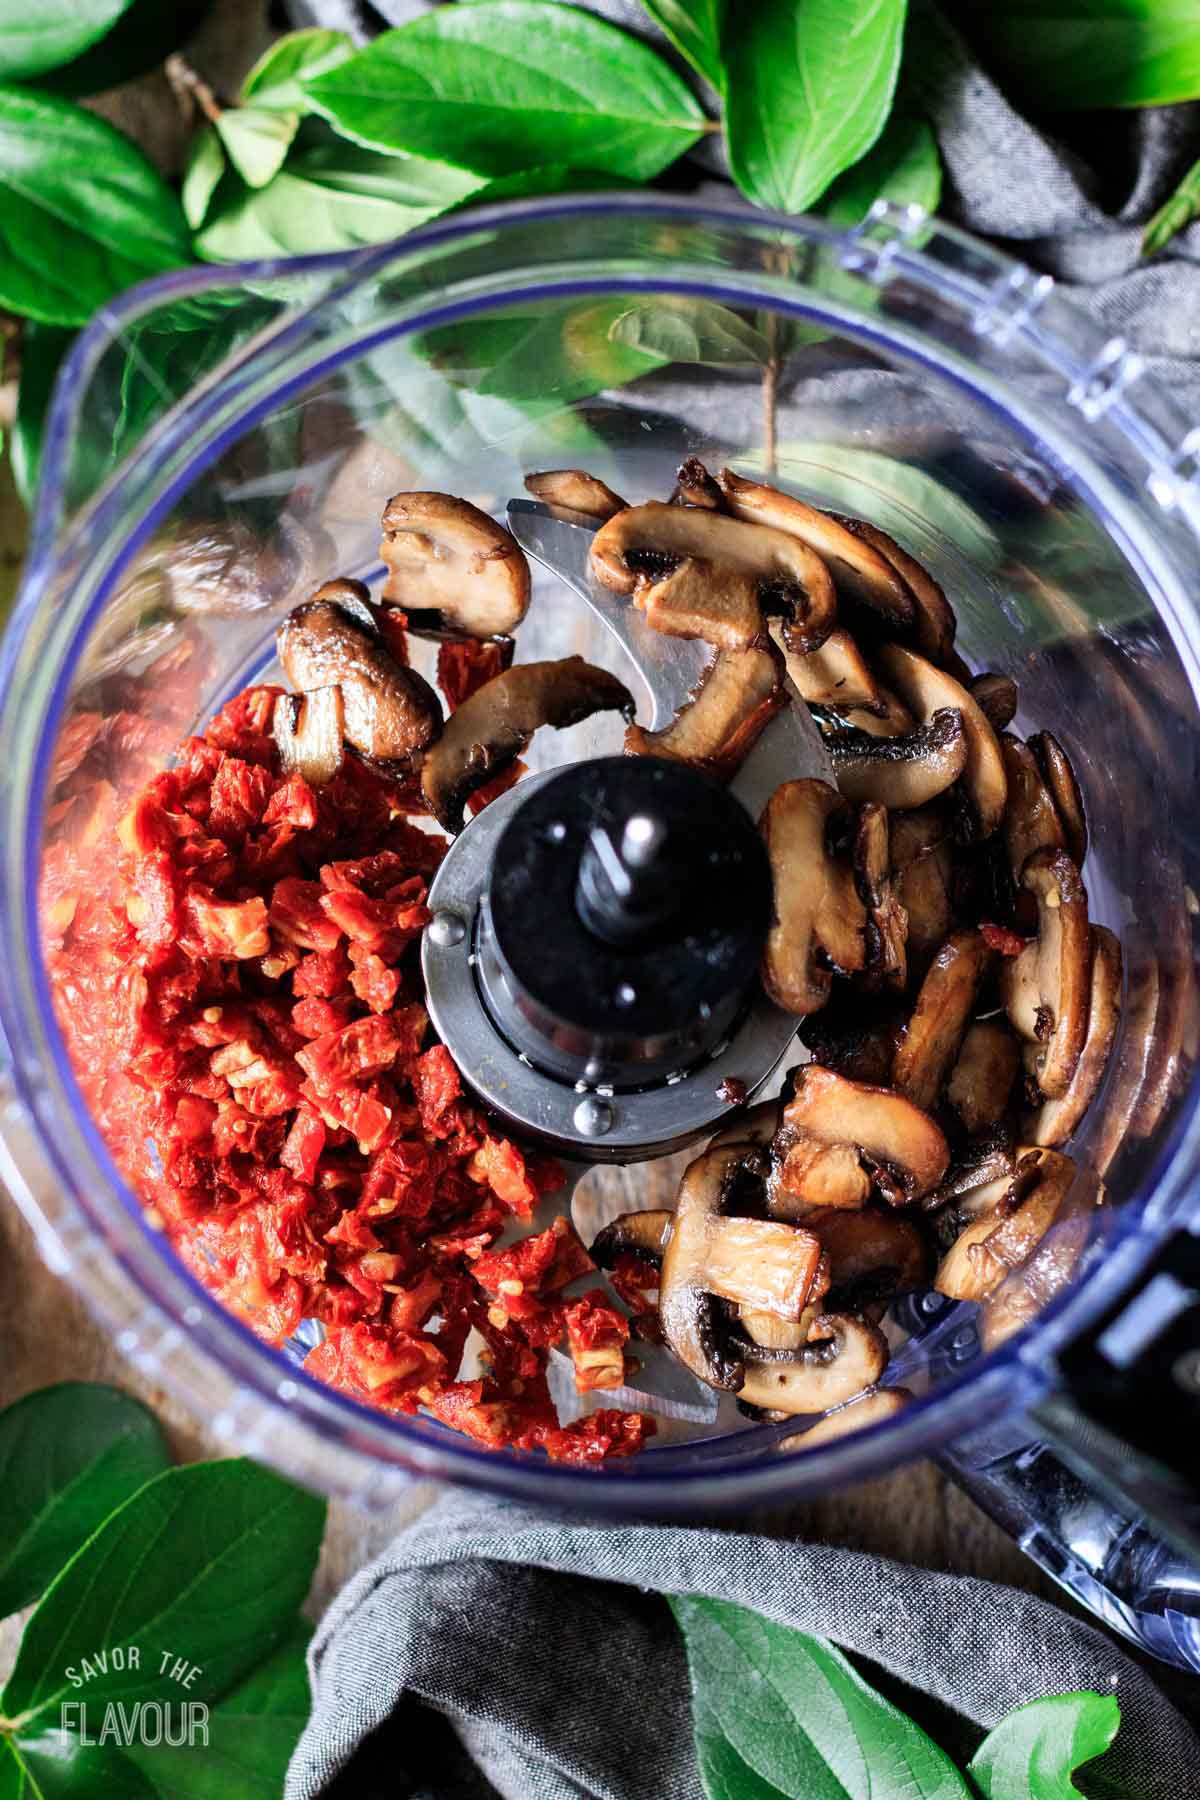 sun dried tomatoes and sauteed mushrooms in a food processor